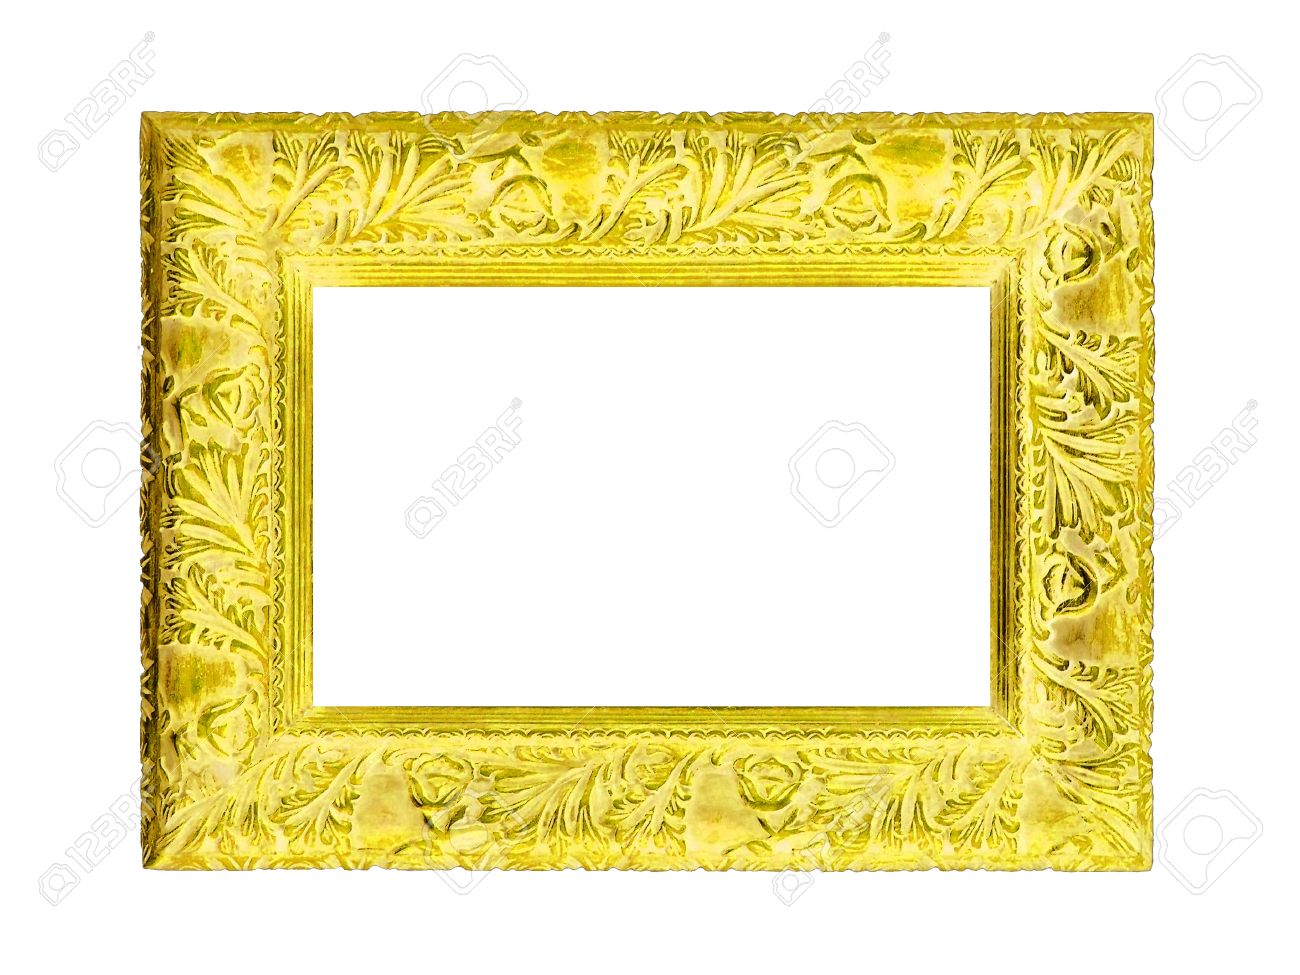 brilliant yellow frame of antique carved wood design isolated on white stock photo 12126867